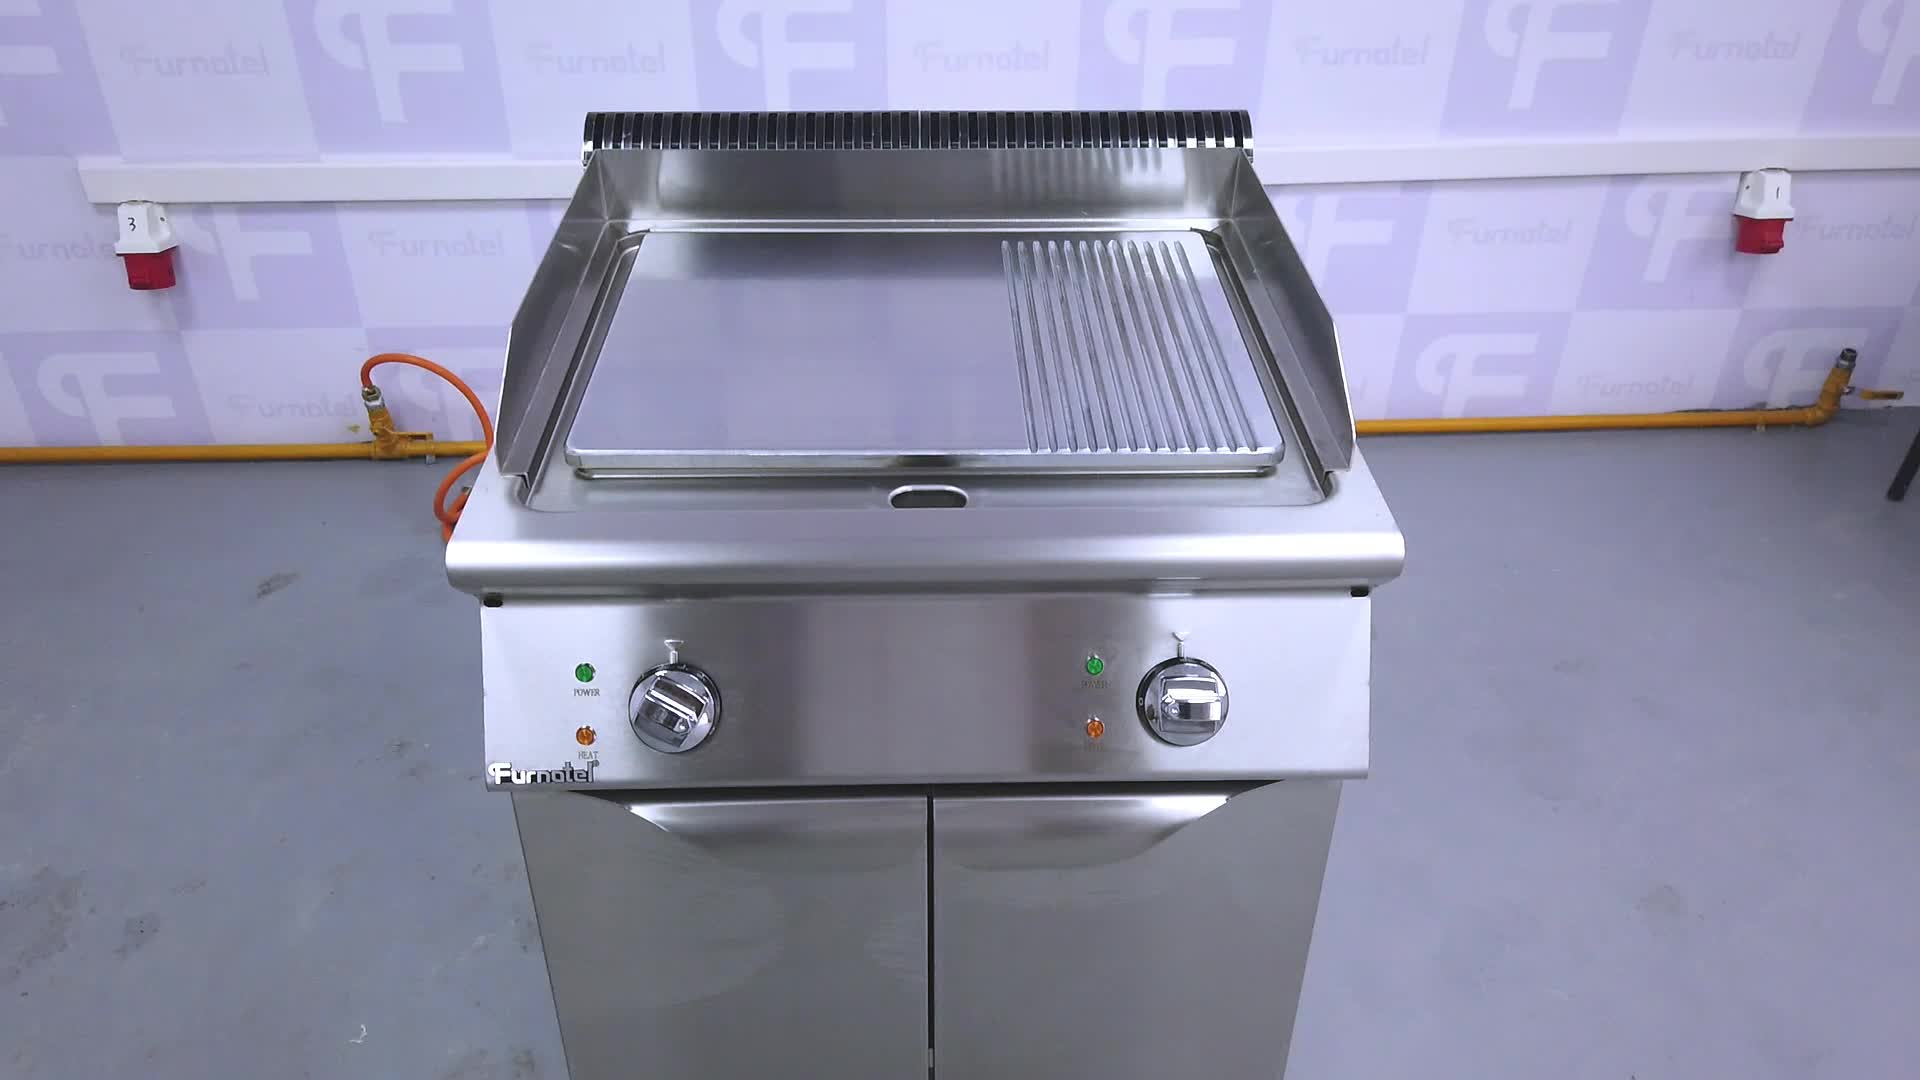 Furnotel Commercial Electric Stainless Steel Half Griddle Plate and Half Grill Machine